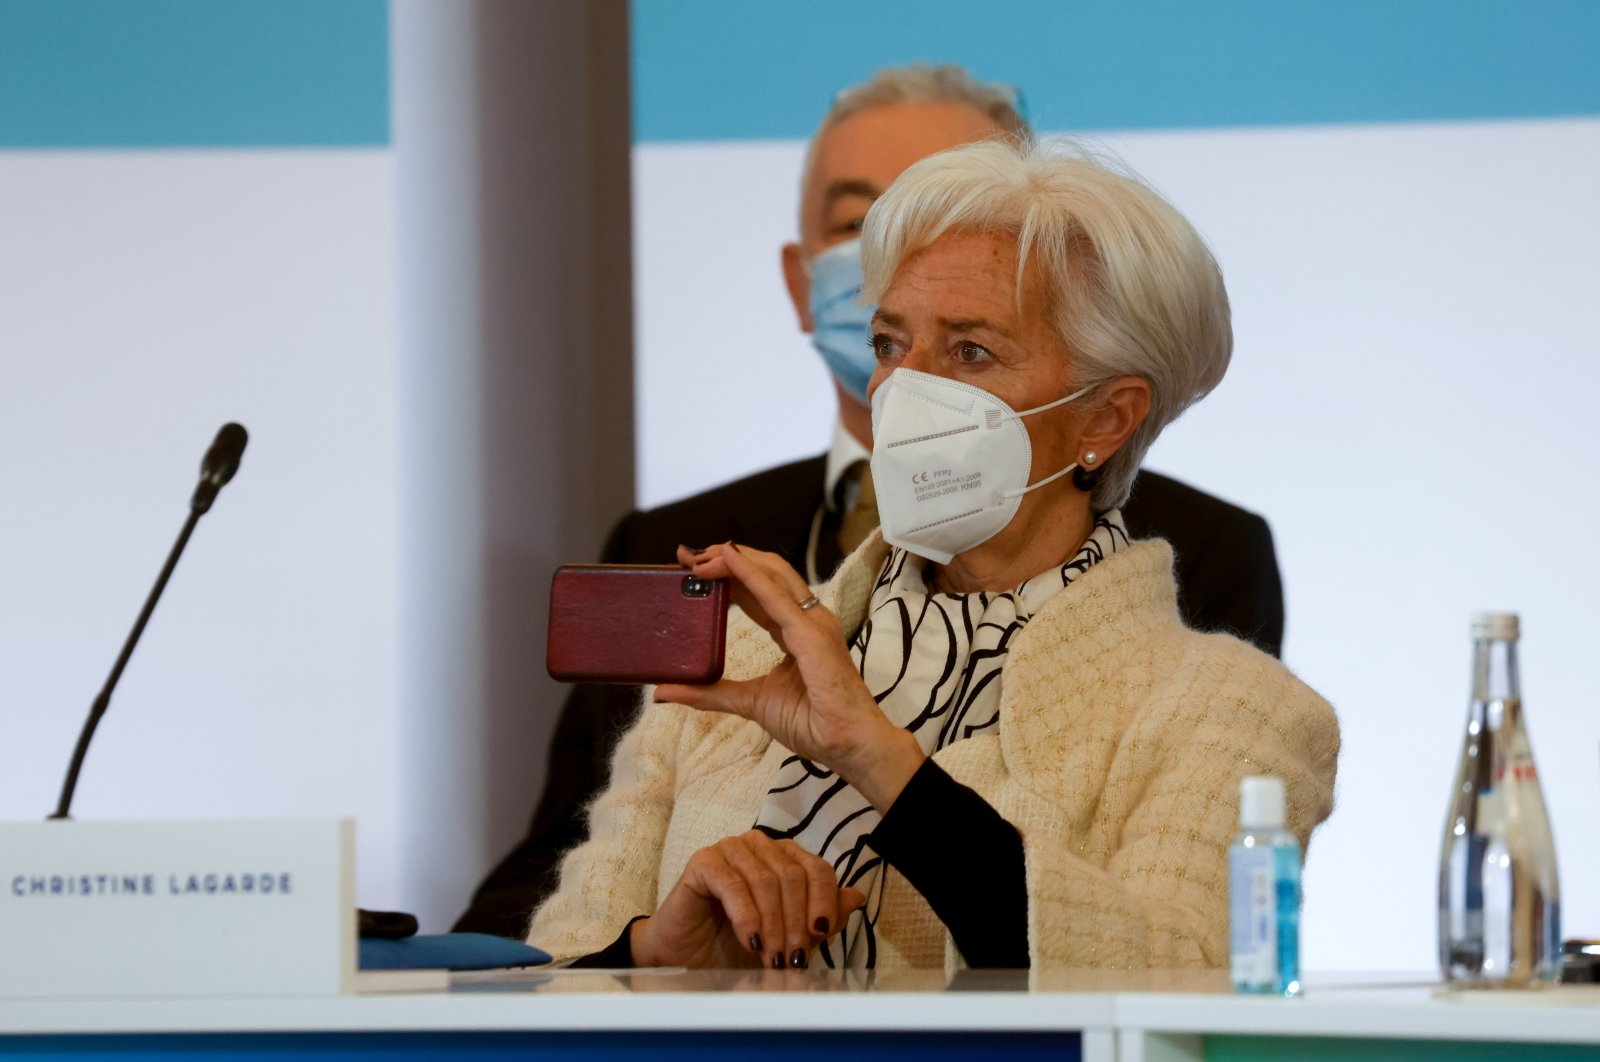 """President of the European Central Bank (ECB) Christine Lagarde holds her smartphone as she attends the """"One Planet Summit"""" on biodiversity which is part of the World Nature Day at The Elysee Palace in Paris, France, Jan. 11, 2021. (Reuters Photo)"""